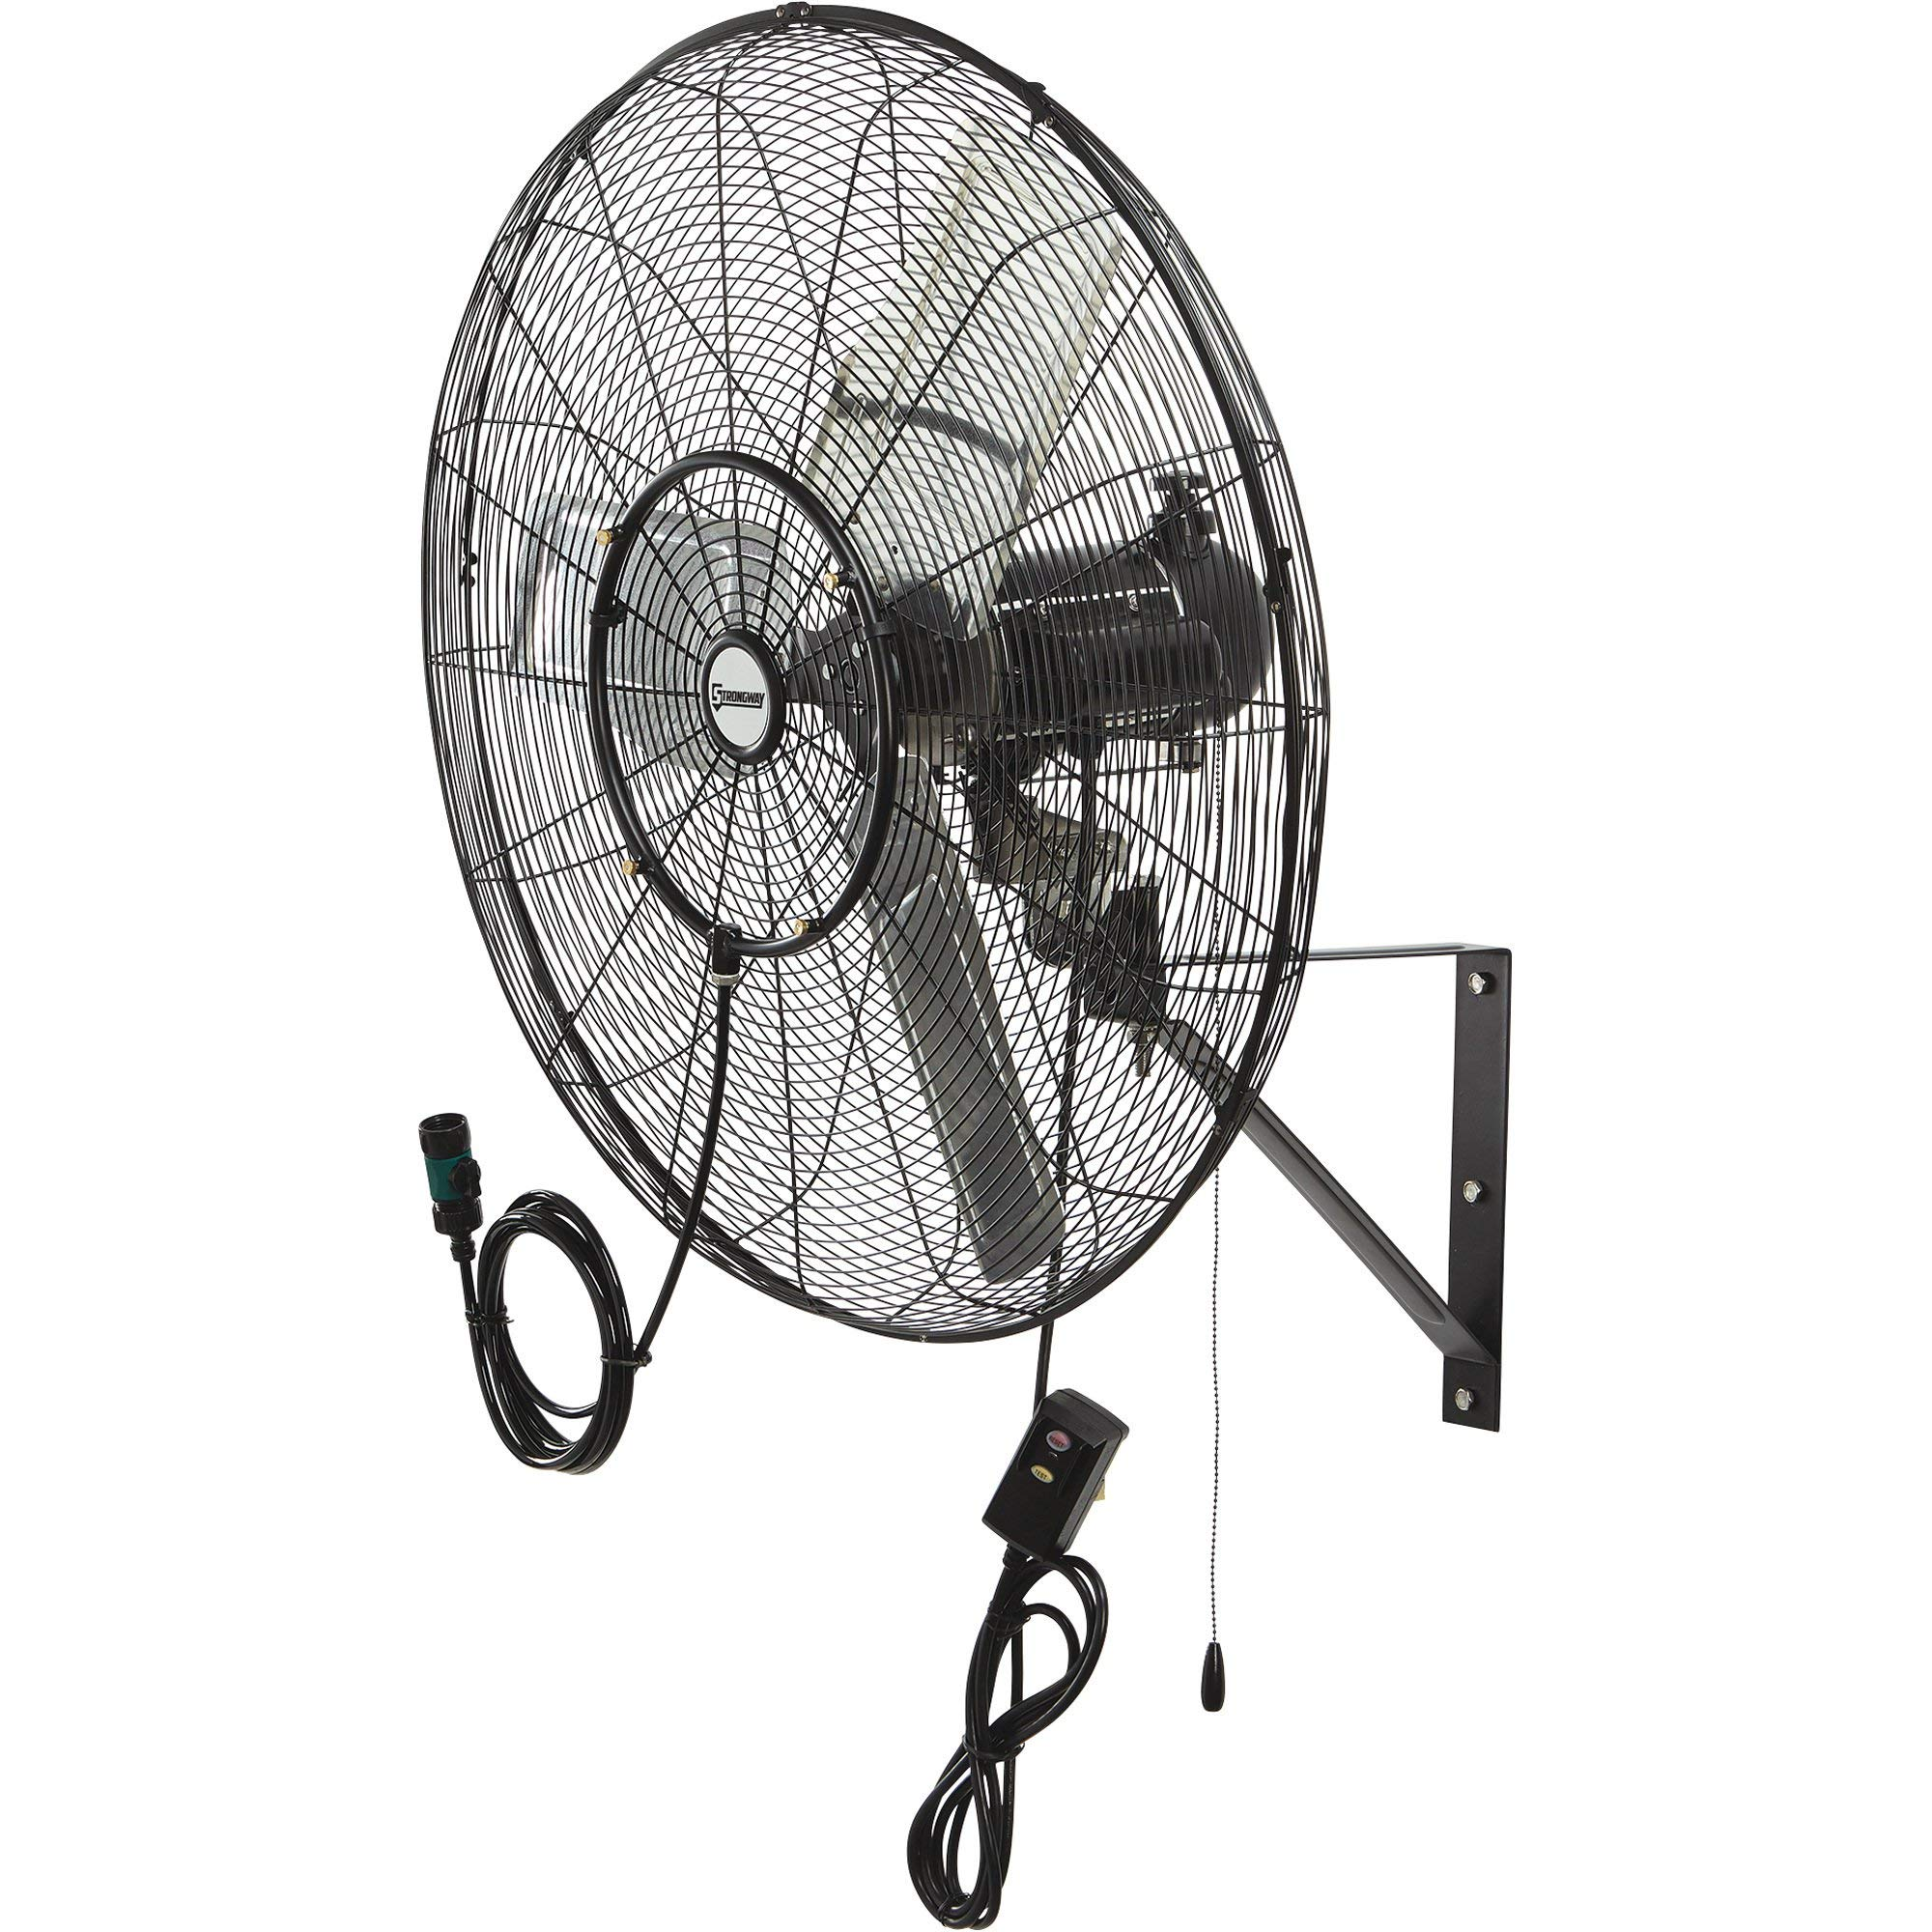 Strongway Outdoor Wall-Mount Misting Fan - 30in. 7200 CFM by Strongway